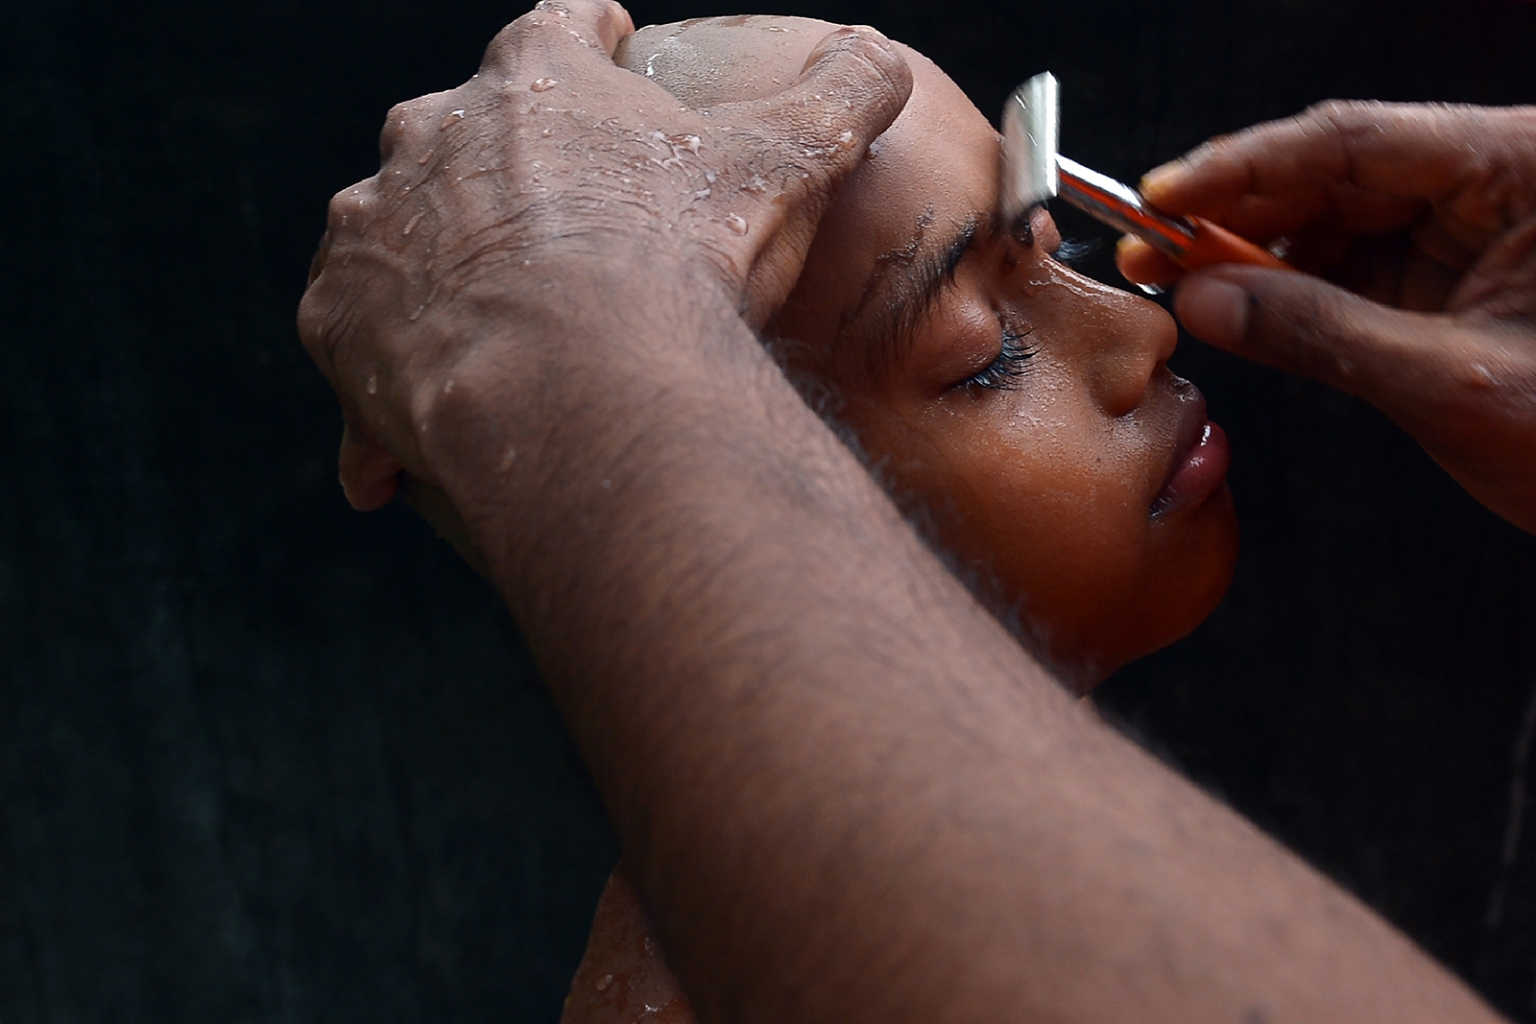 A Sri Lankan novice monk has his eyebrows shaved during a ceremony marking entry into the priesthood in the village of Eheliyagoda, Sri Lanka, on May 28. Sri Lanka is primarily a Buddhist country but faces a shortage of men joining the priesthood. LAKRUWAN WANNIARACHCHI/AFP/GETTY IMAGES